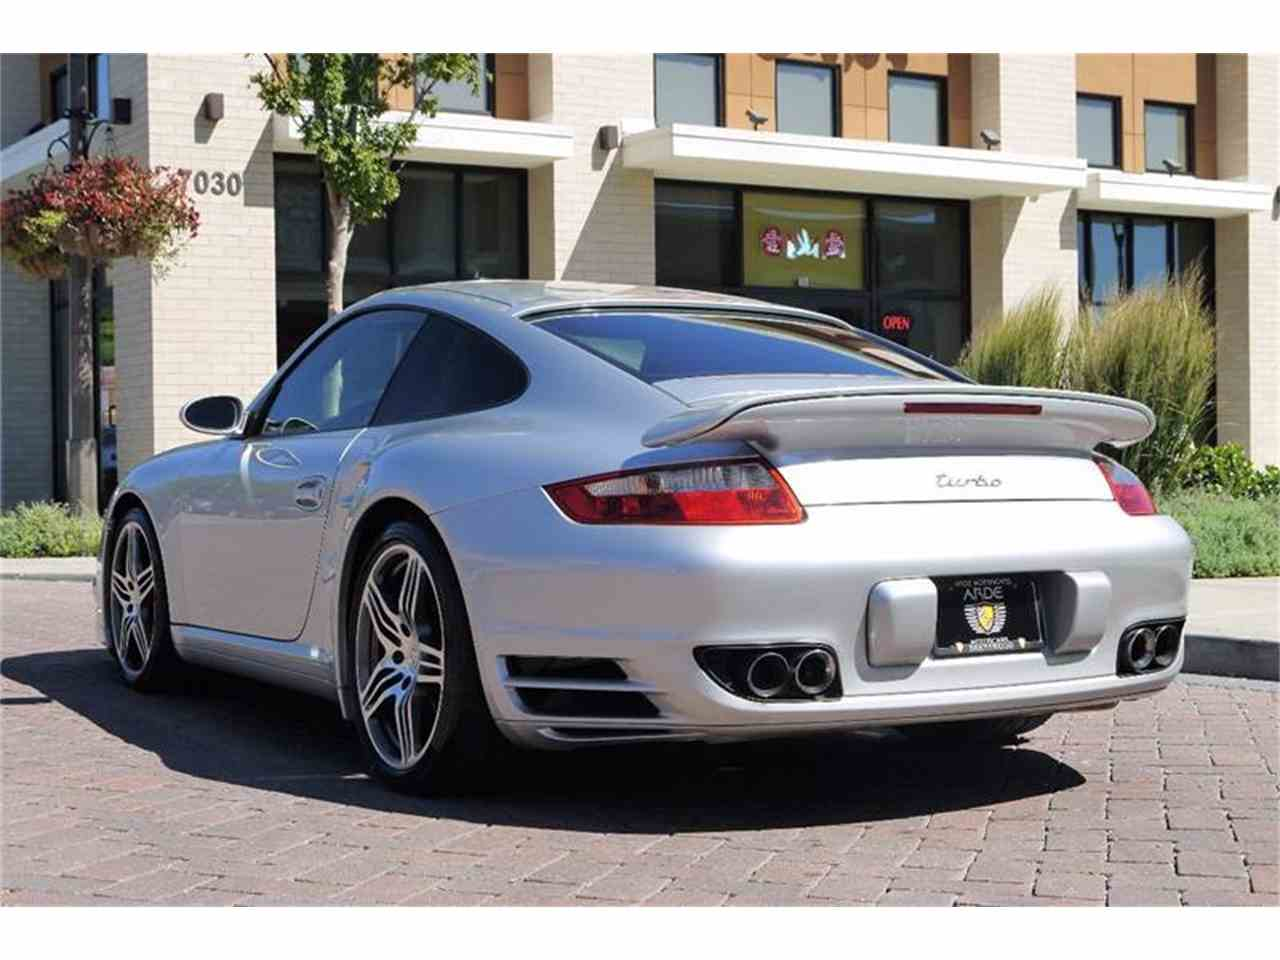 Large Picture of '07 Porsche 911 - $84,800.00 Offered by Arde Motorcars - M2NR